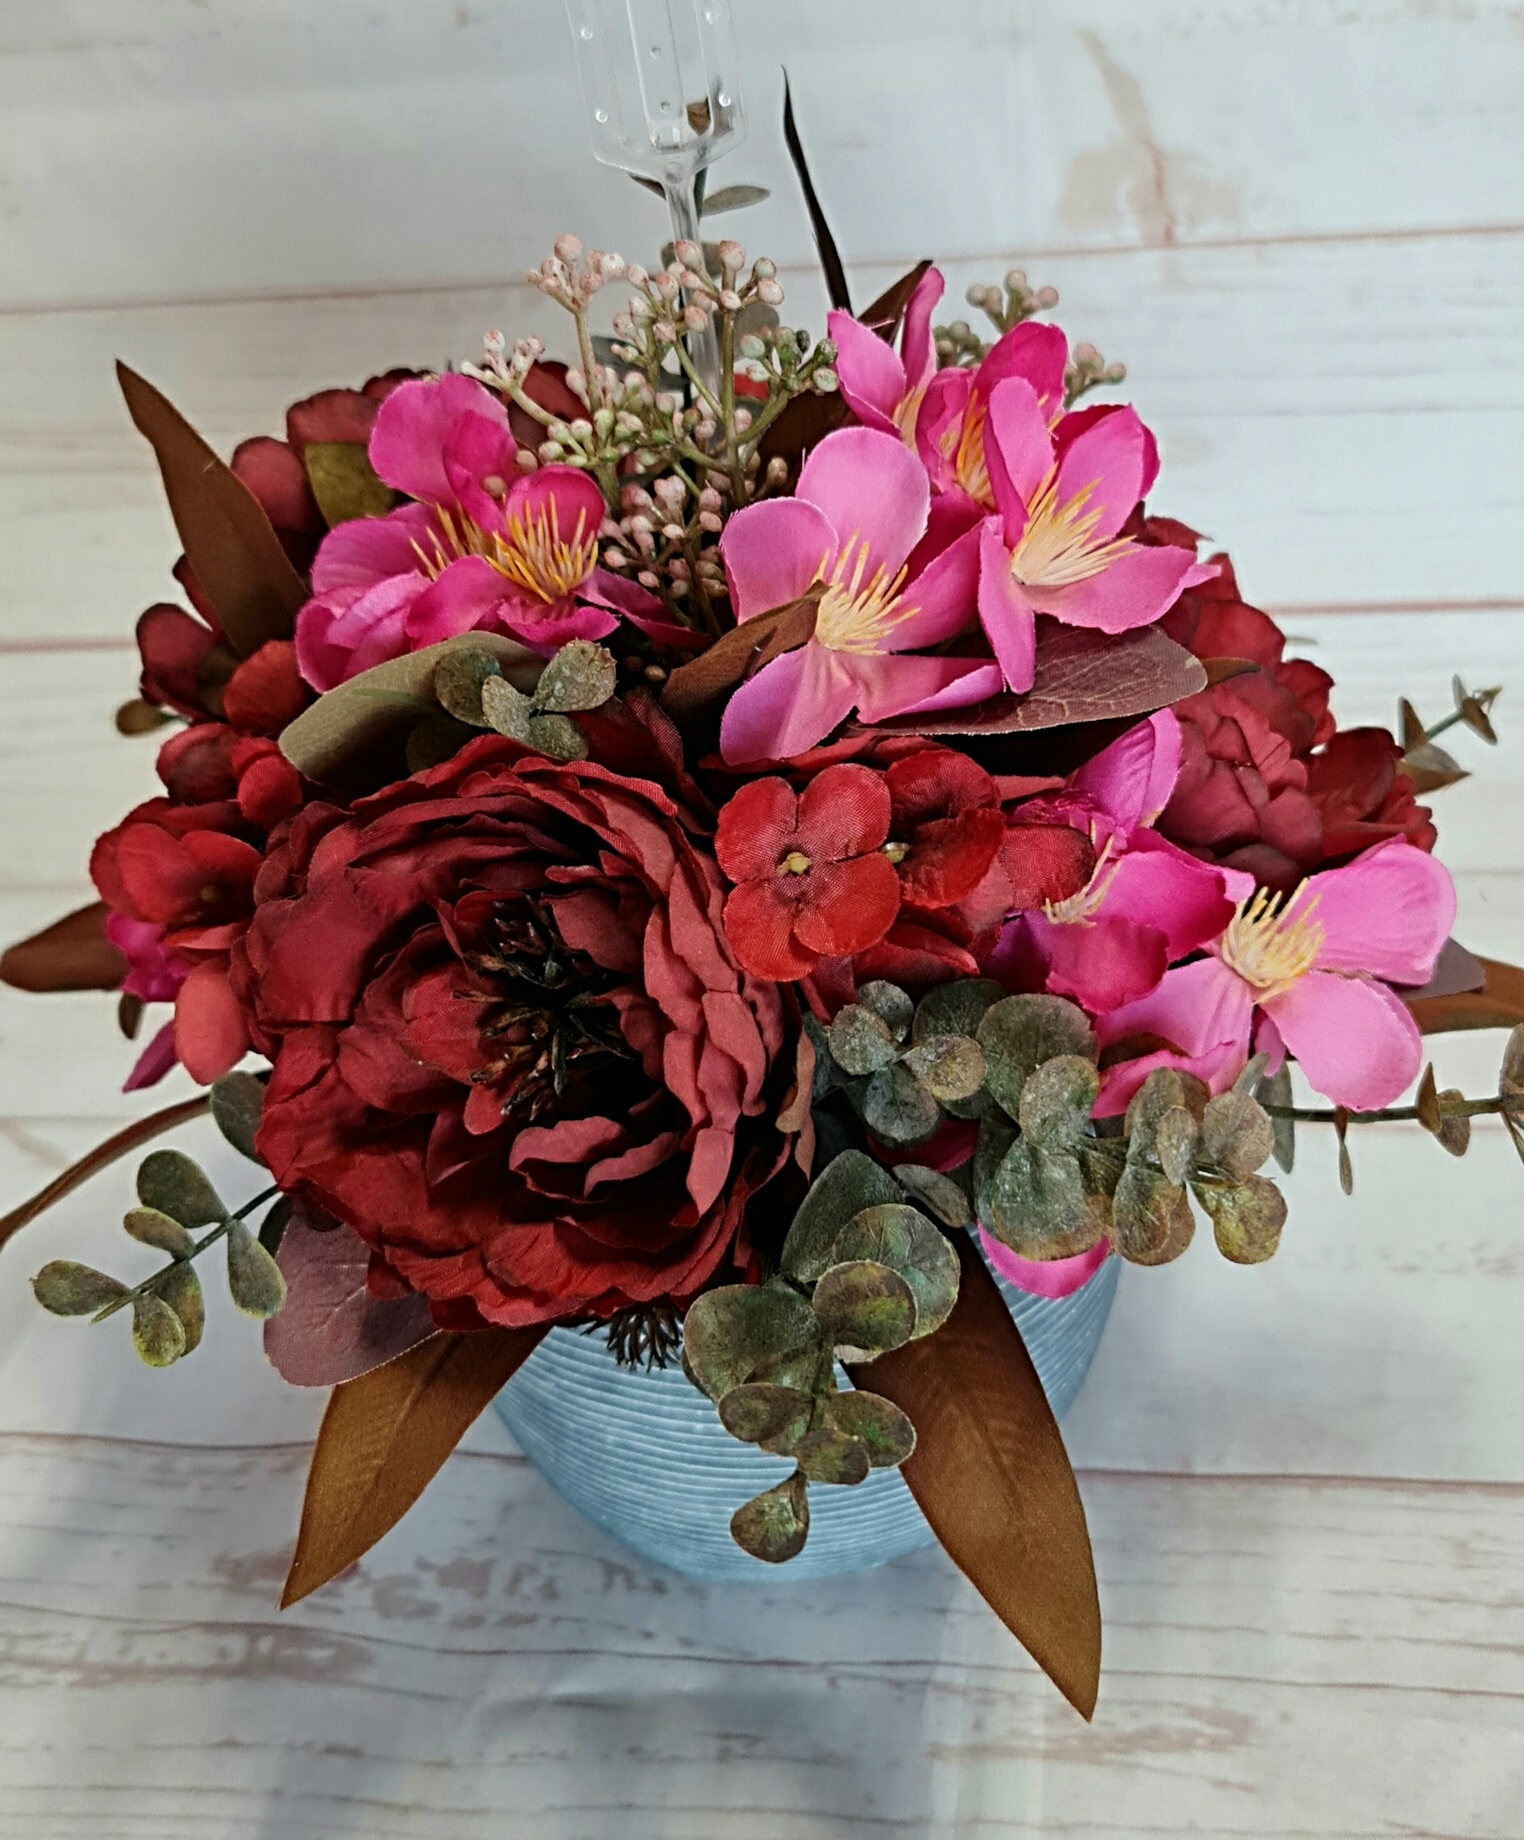 This petite artificial arrangement is a must for any home, office, or hospital.  Contained in a ceramic, artificial flowers in tones of burgundy and pink.